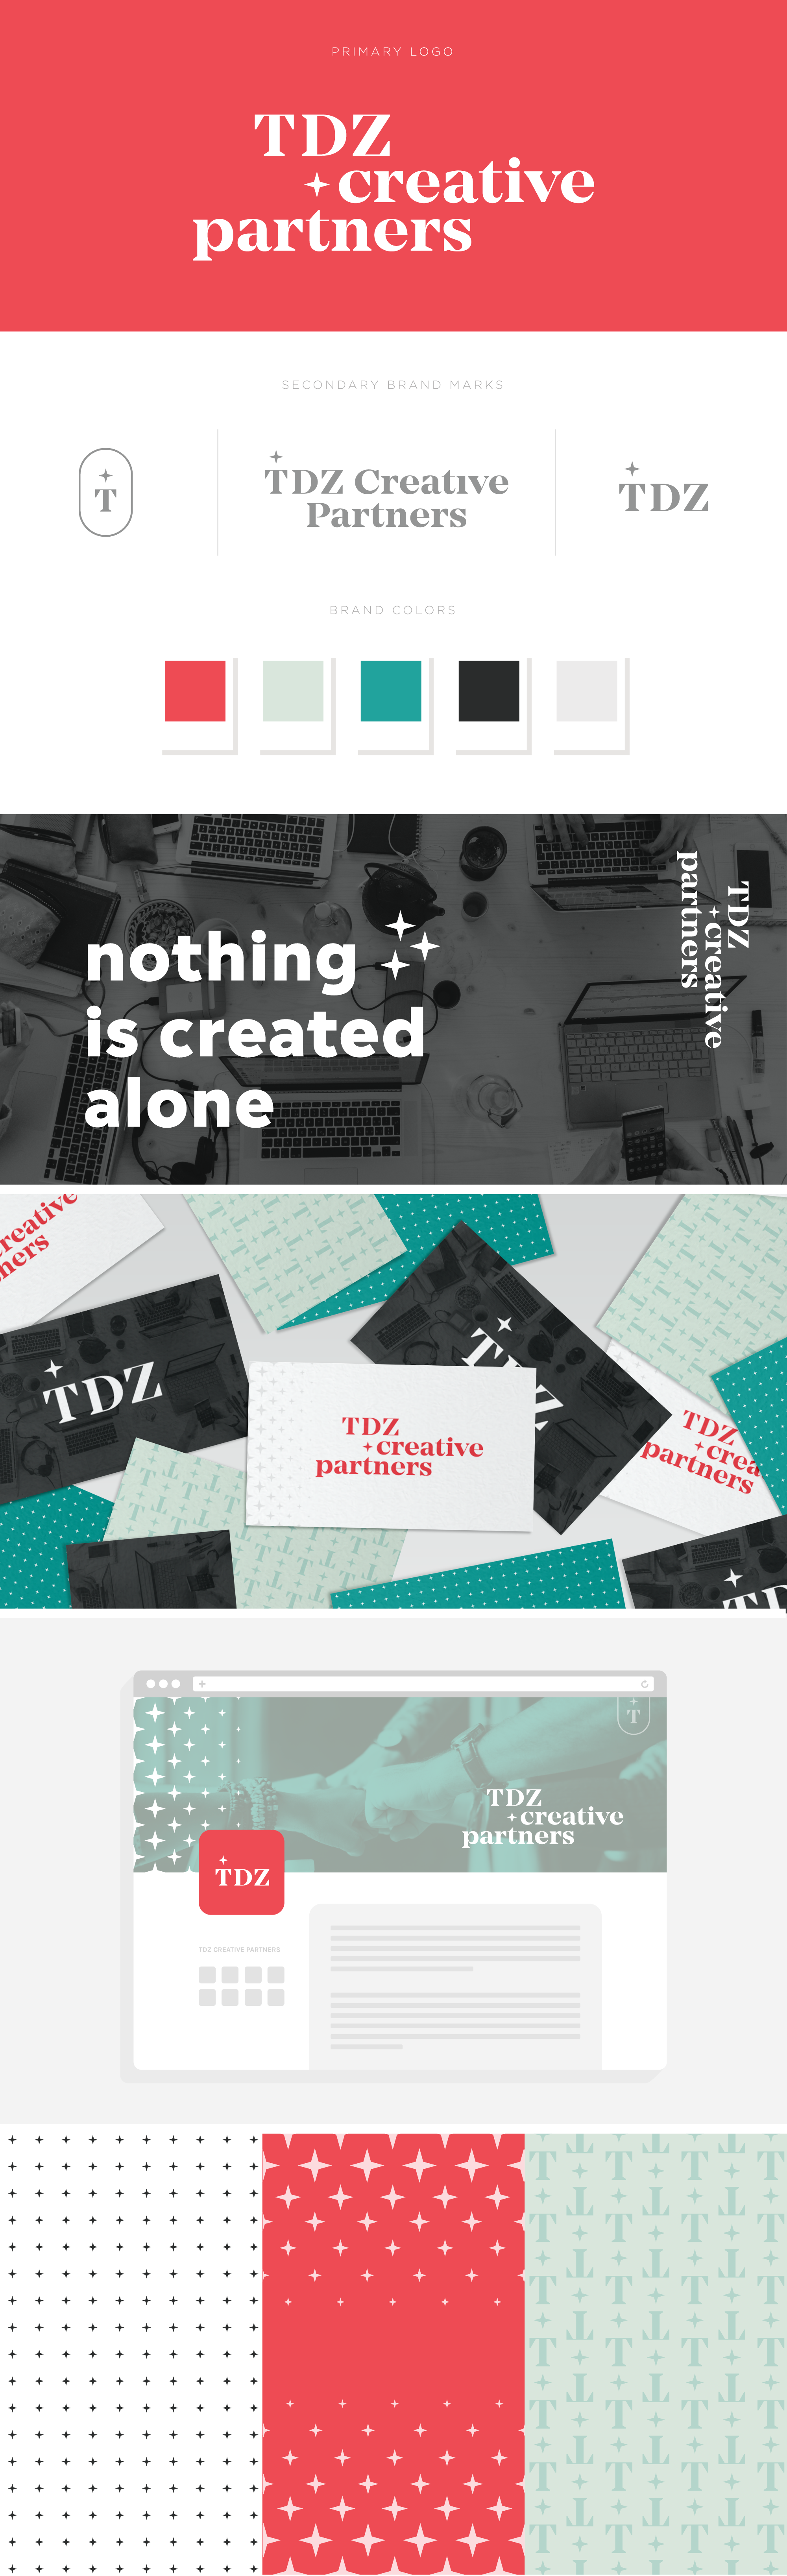 TDZ Creative Partners brand design by Pace Creative Design Studio